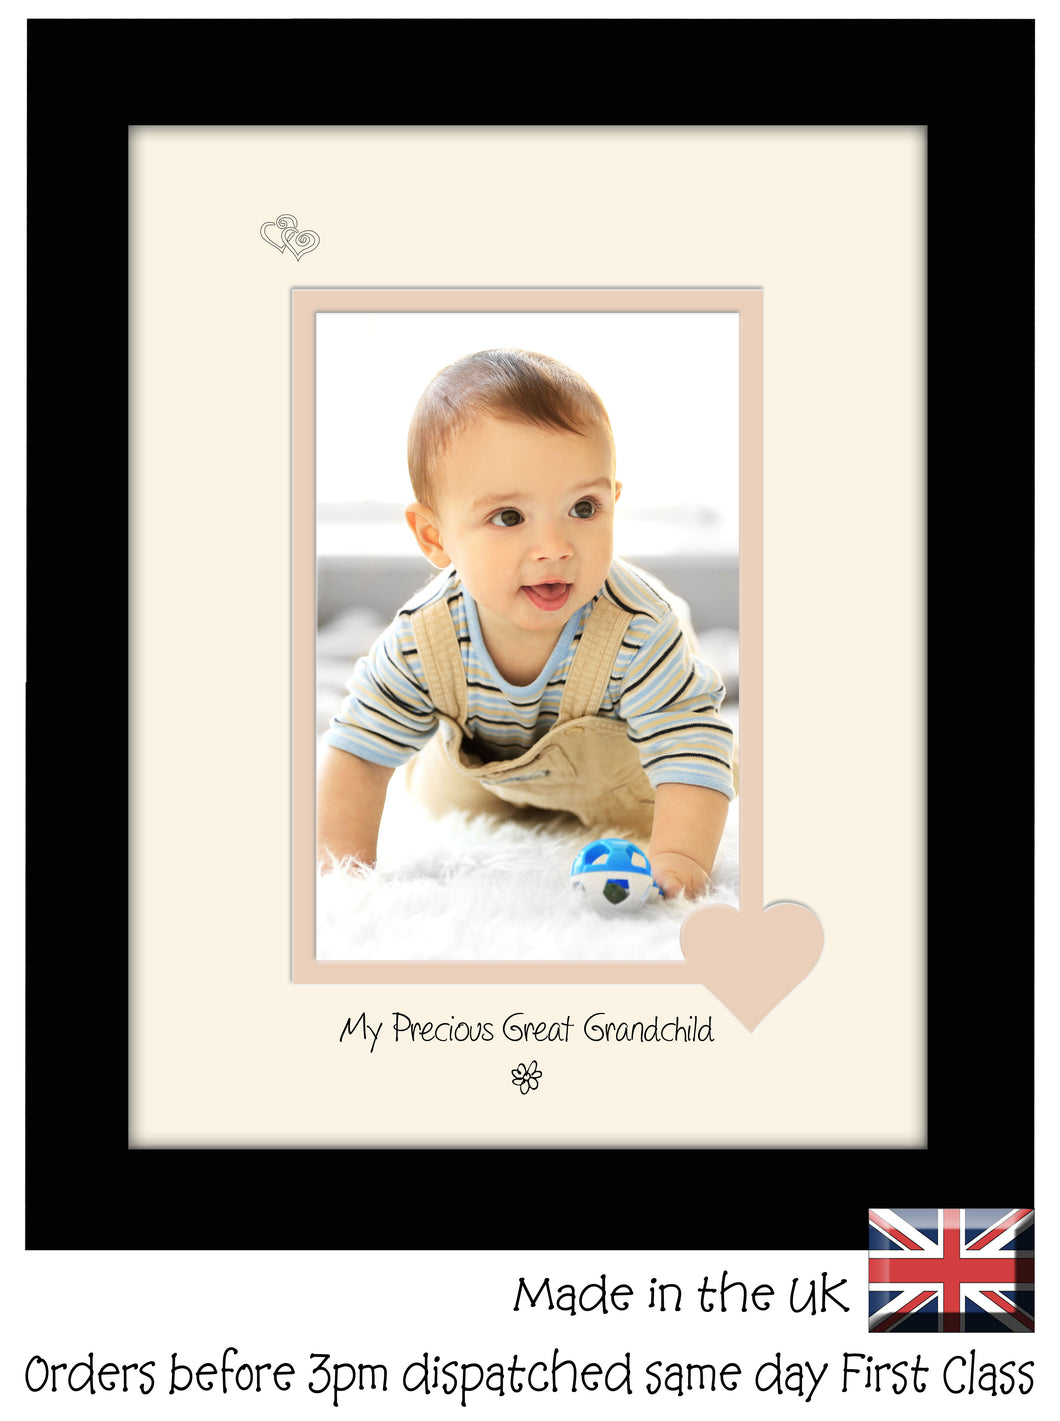 Great Grandchild Photo Frame - My precious Great Grandchild Portrait photo frame 6